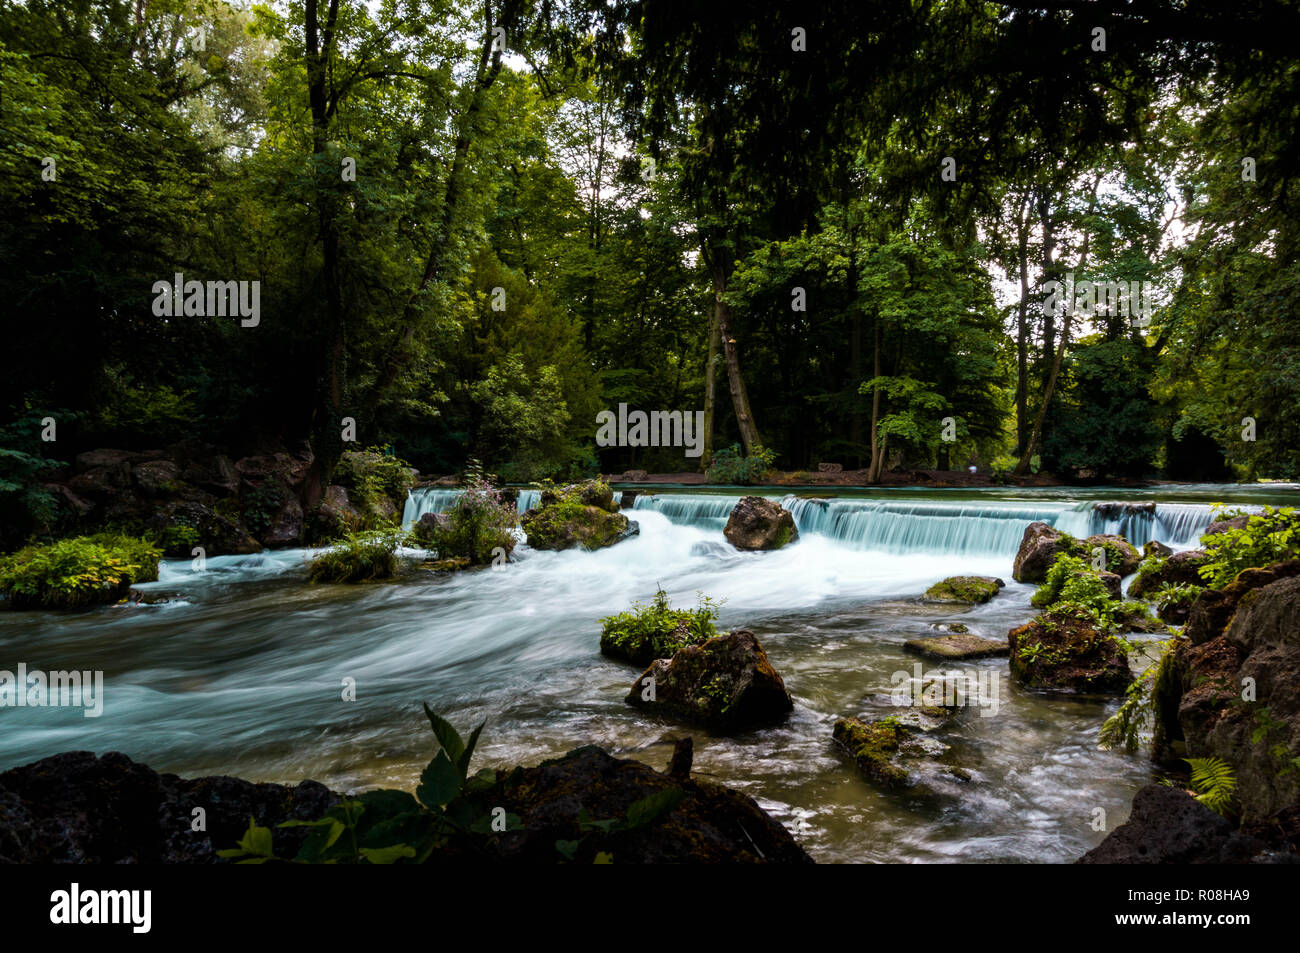 River in Munich - Stock Image